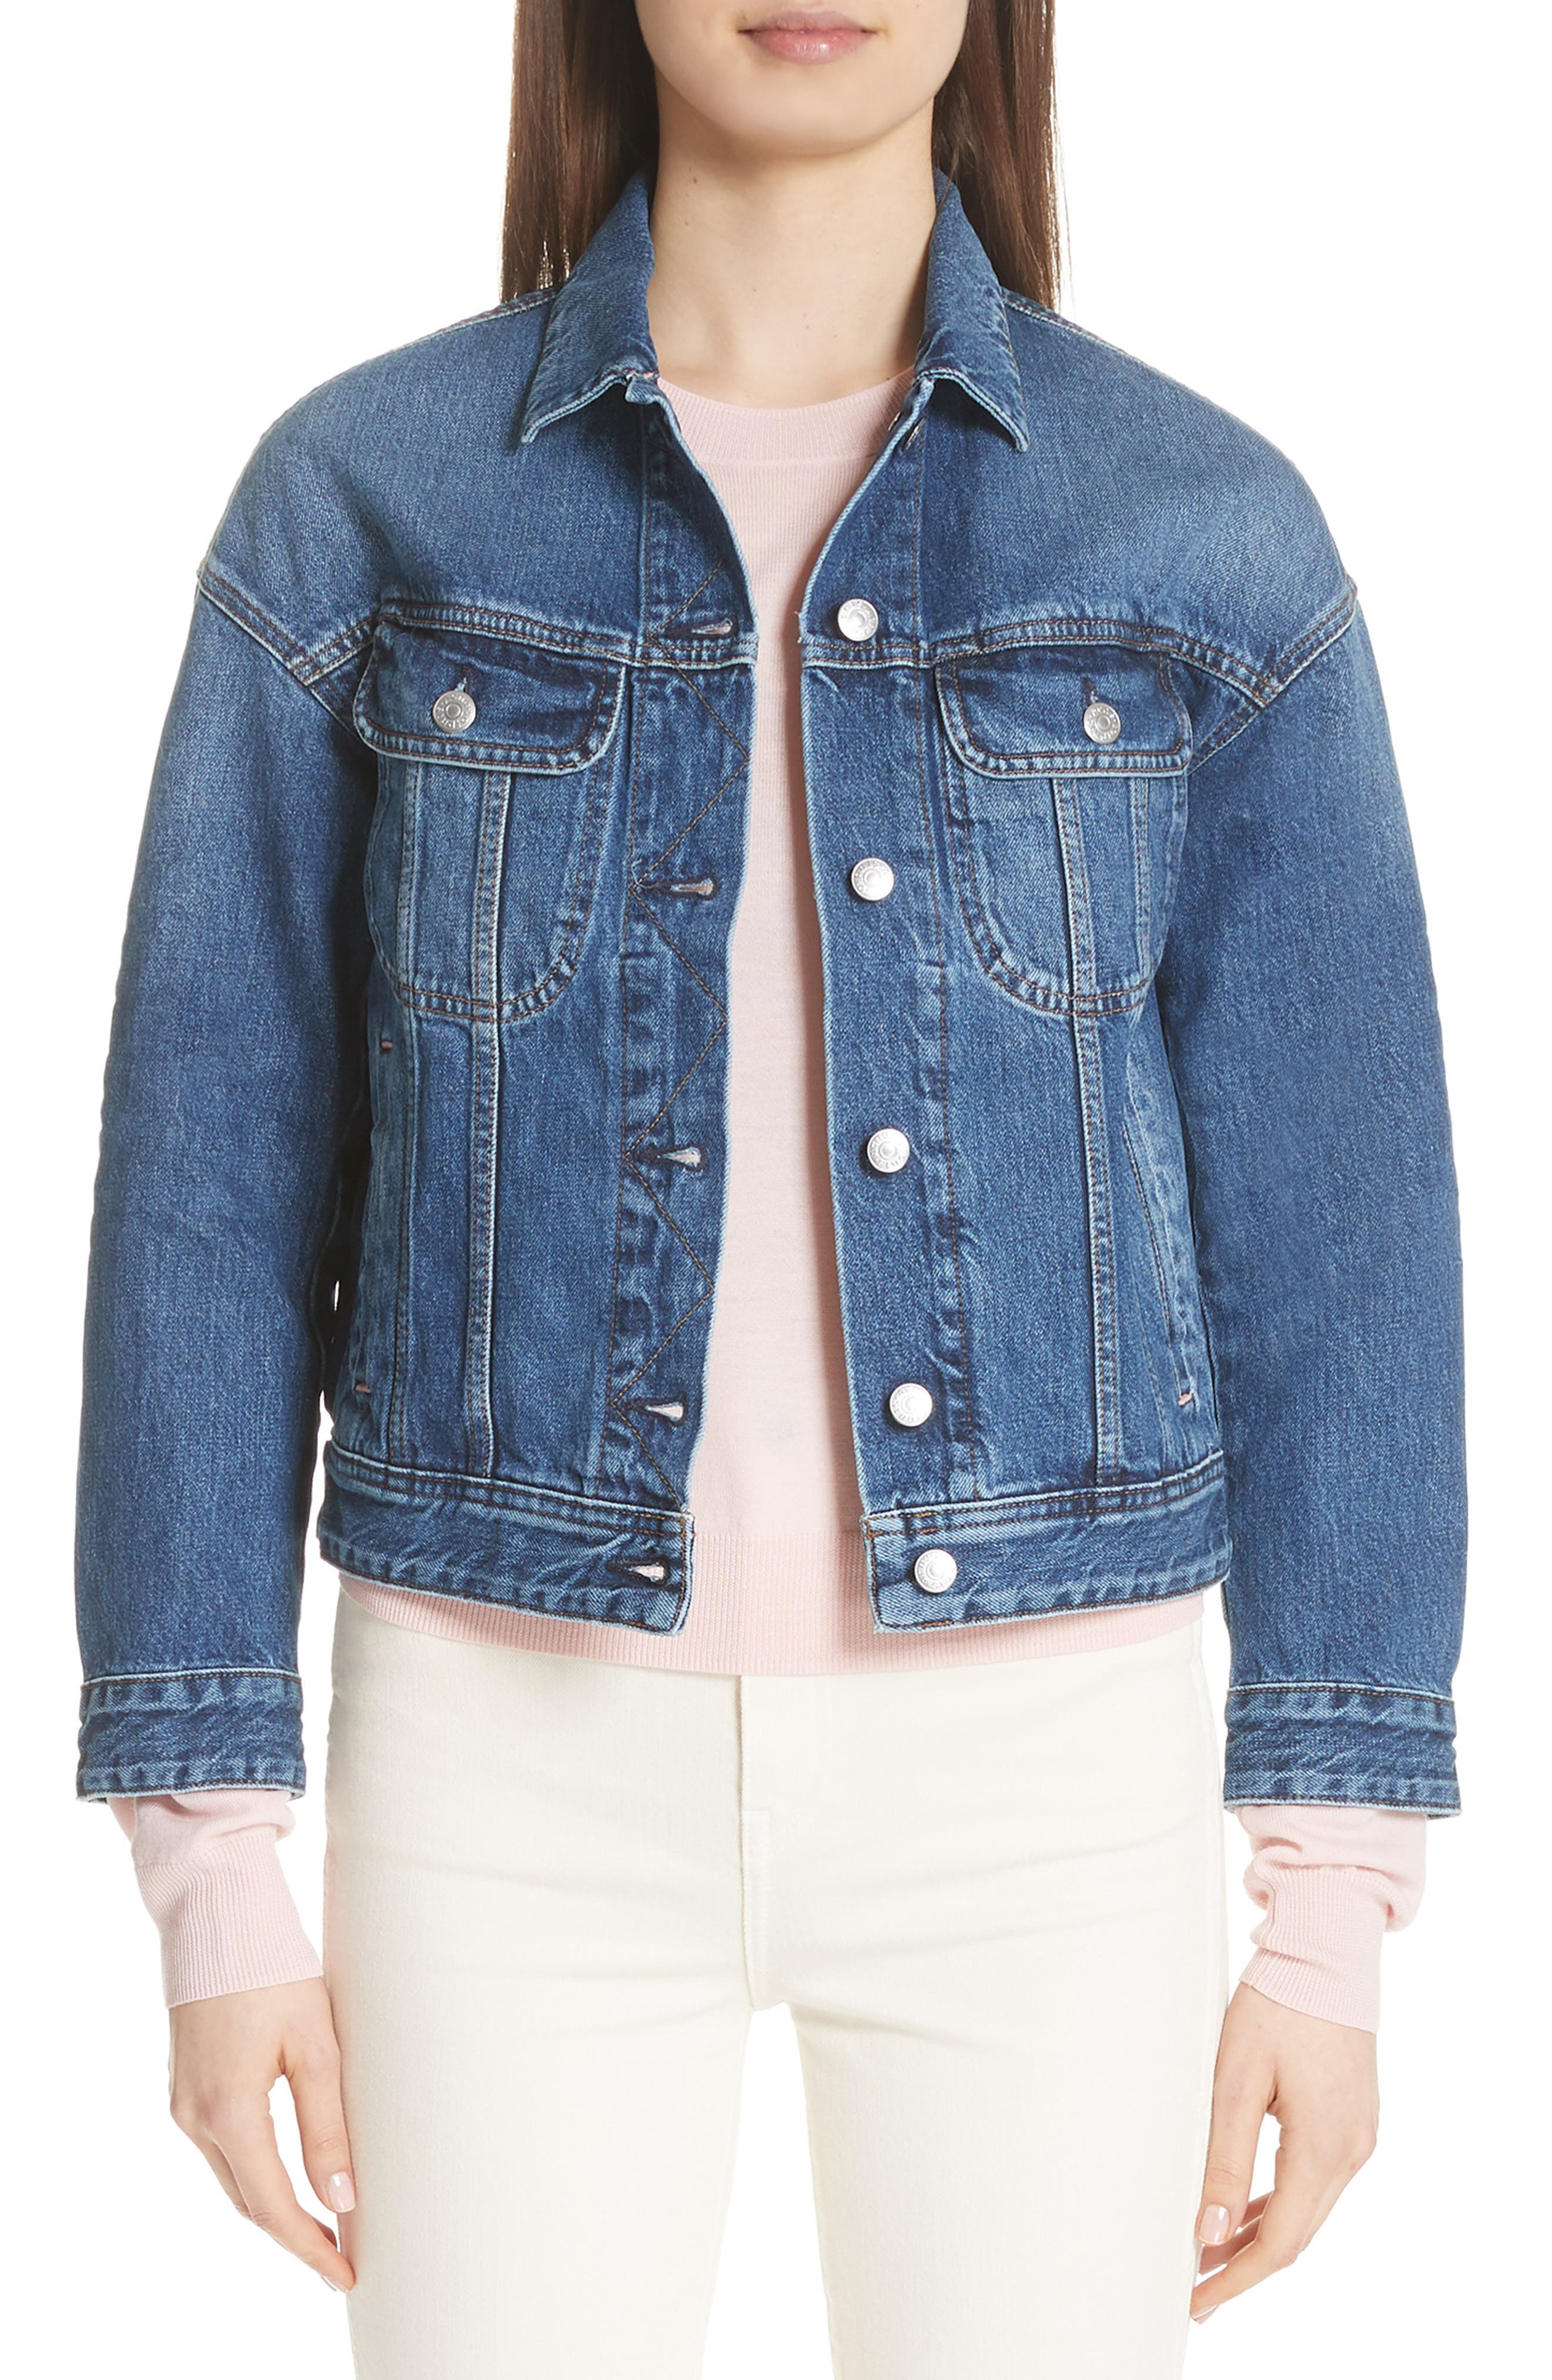 Lamp Denim Jacket,                             Main thumbnail 1, color,                             400